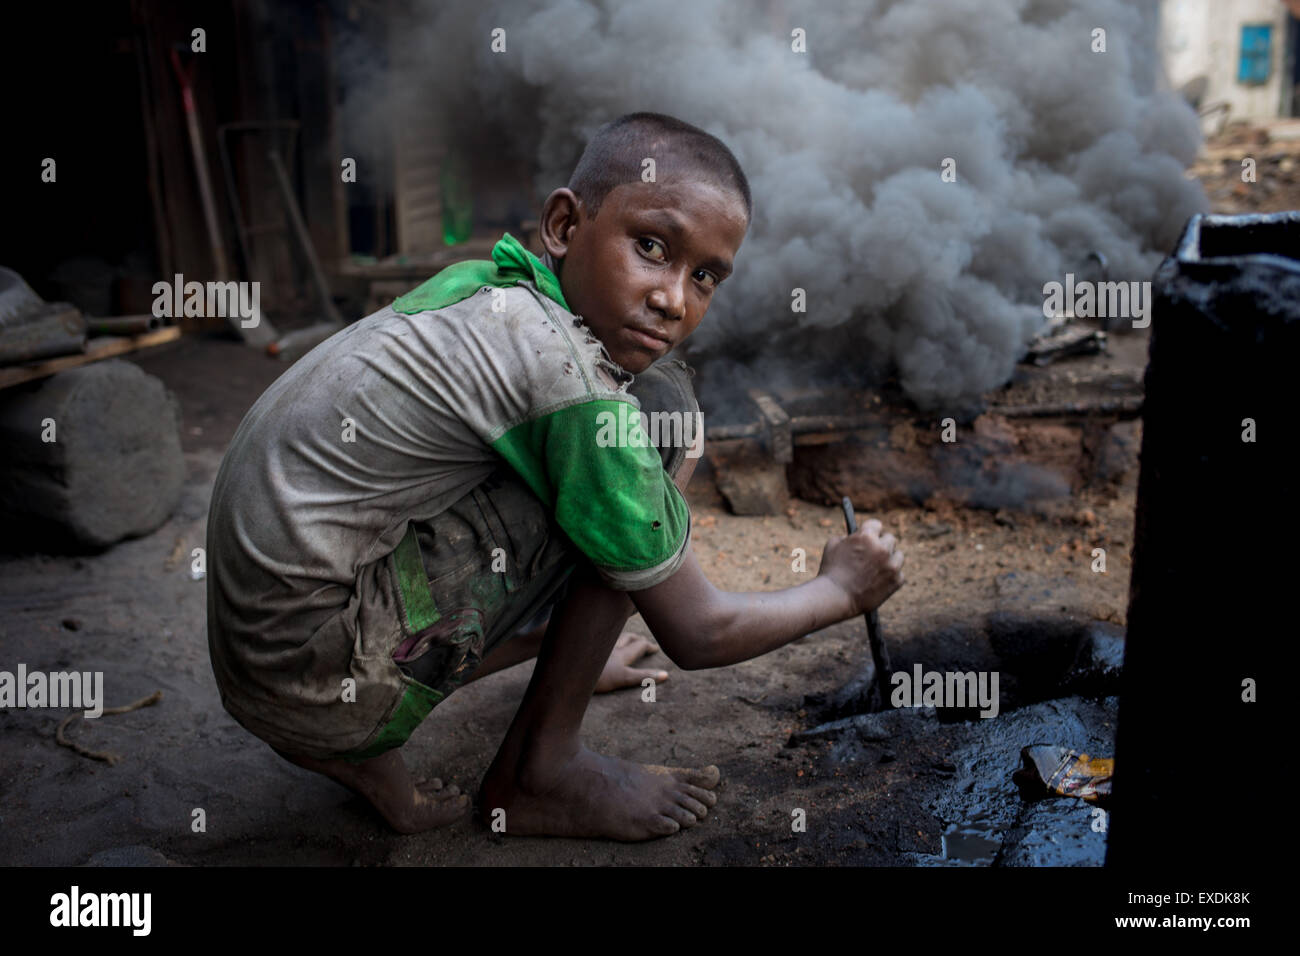 Dhaka, Bangladesh. 12th July, 2015. A child works in a hazardous working condition in a Shipyard. Credit:  Mohammad - Stock Image